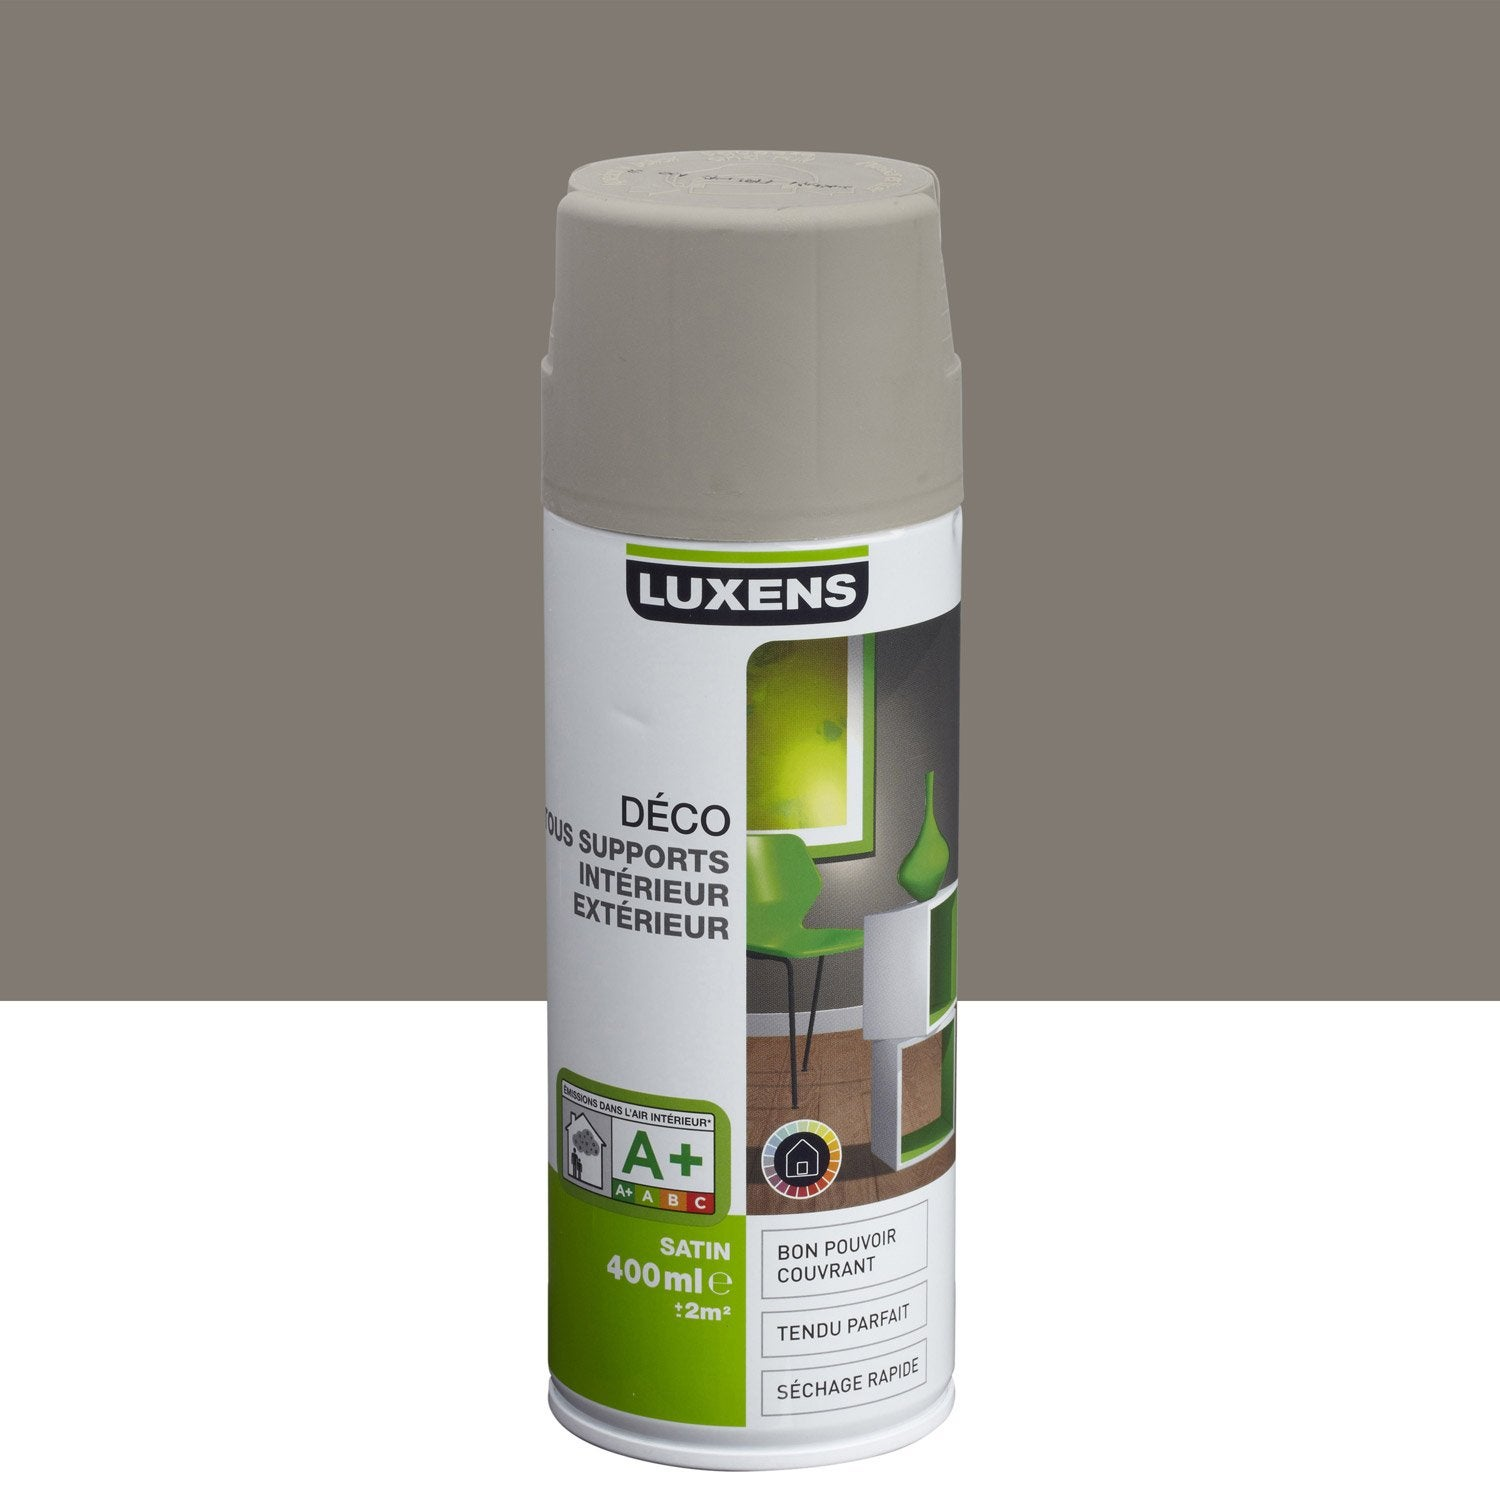 Peinture a rosol satin luxens brun taupe n 3 0 4 l leroy merlin for Peinture brun taupe